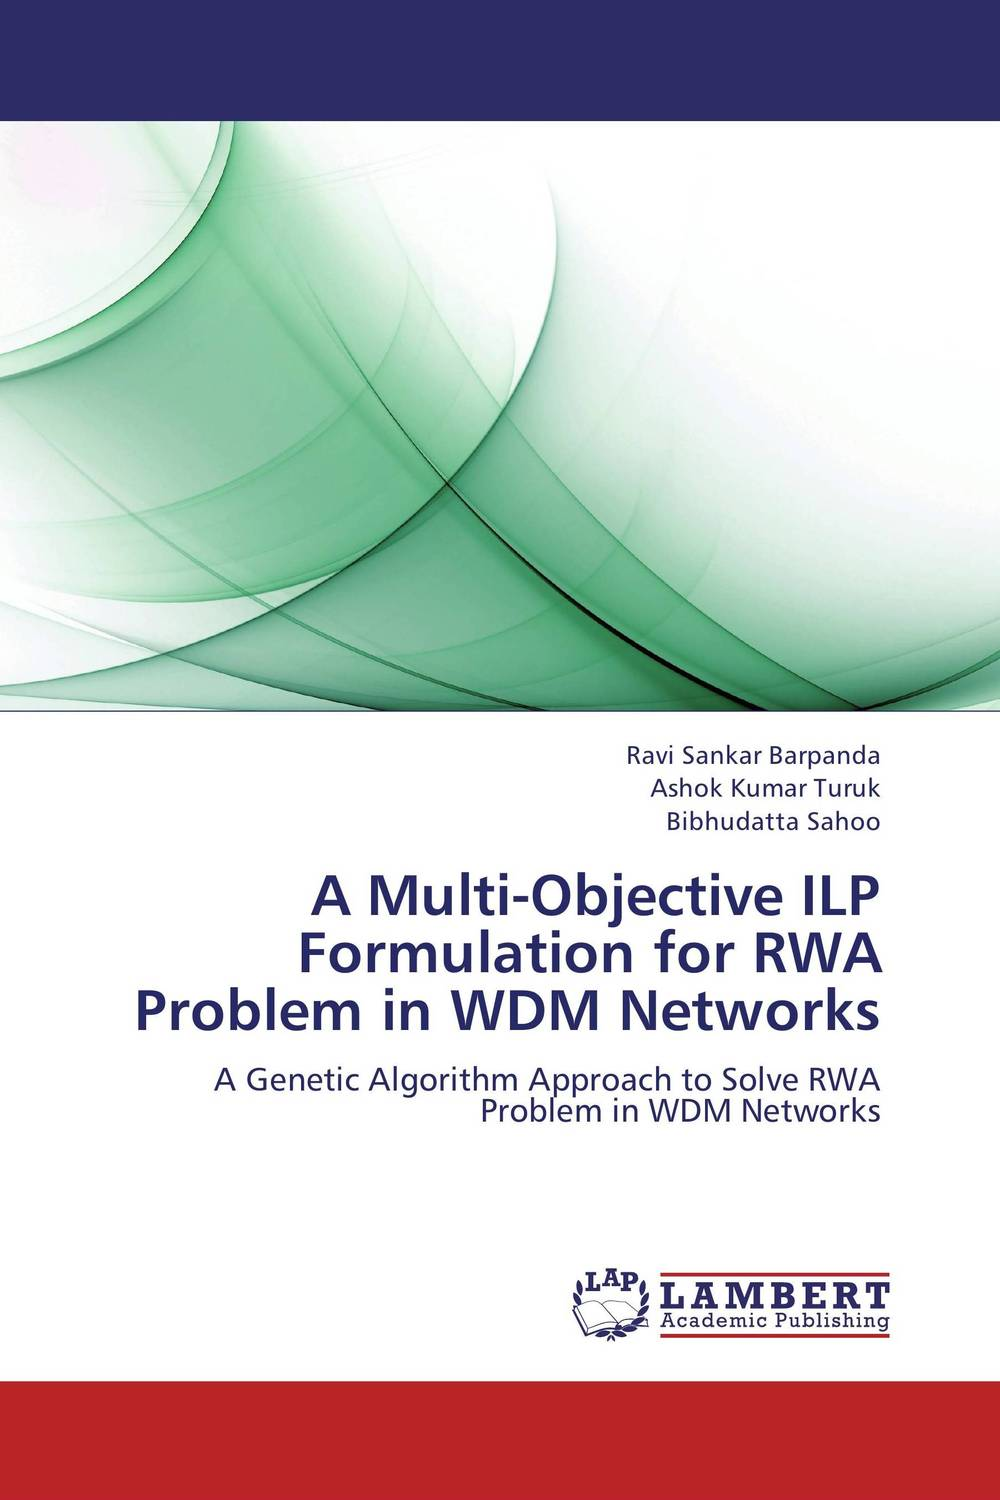 A Multi-Objective ILP Formulation for RWA Problem in WDM Networks